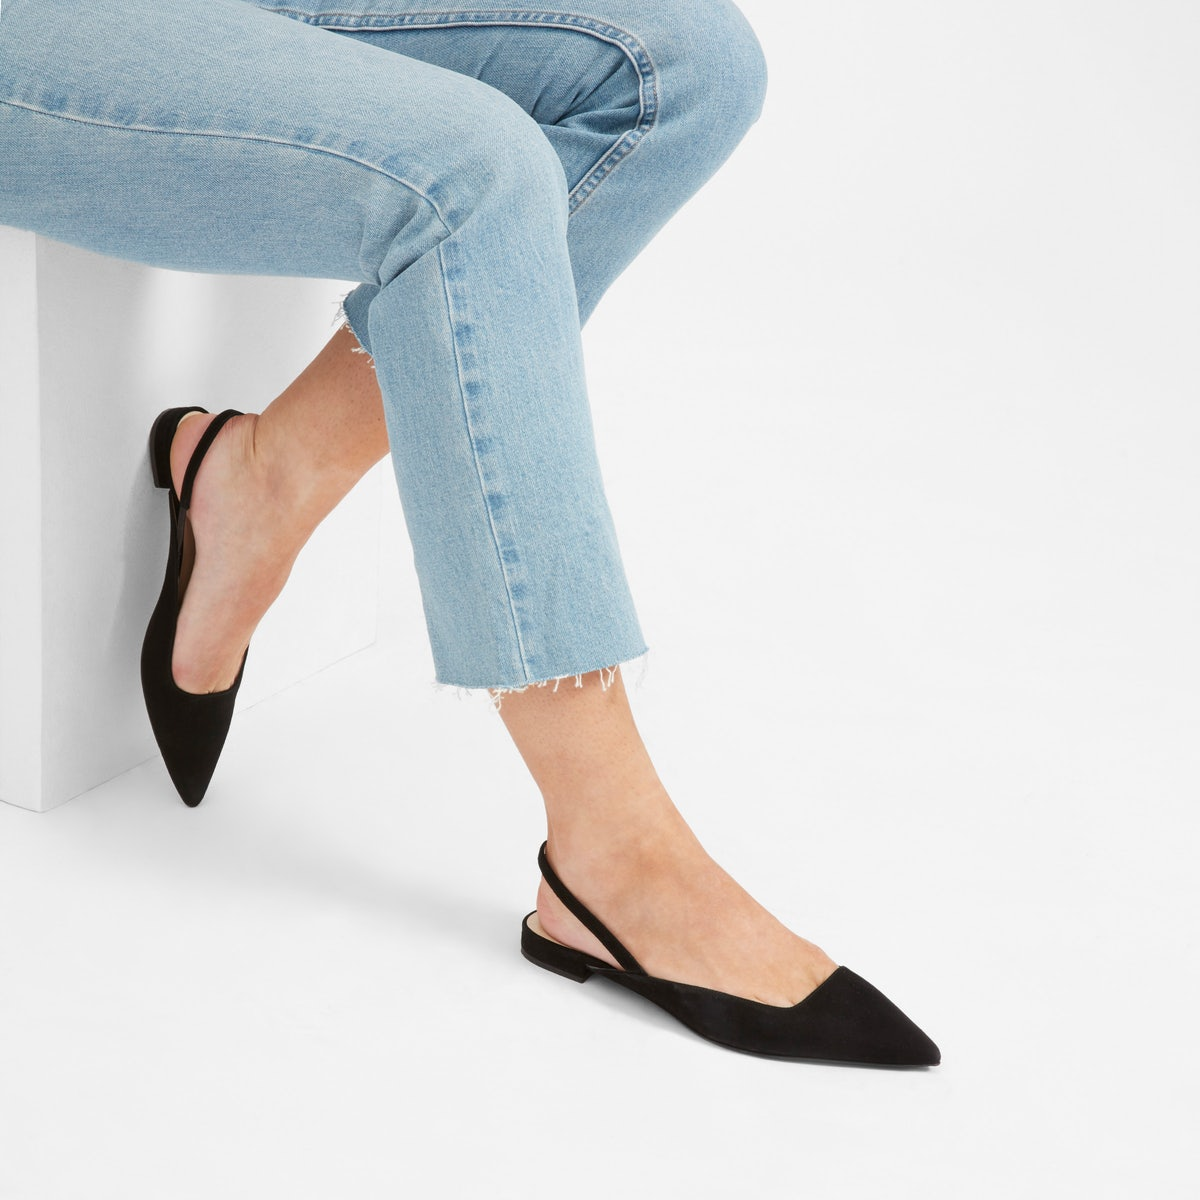 Black Everlane Slingback Sandals